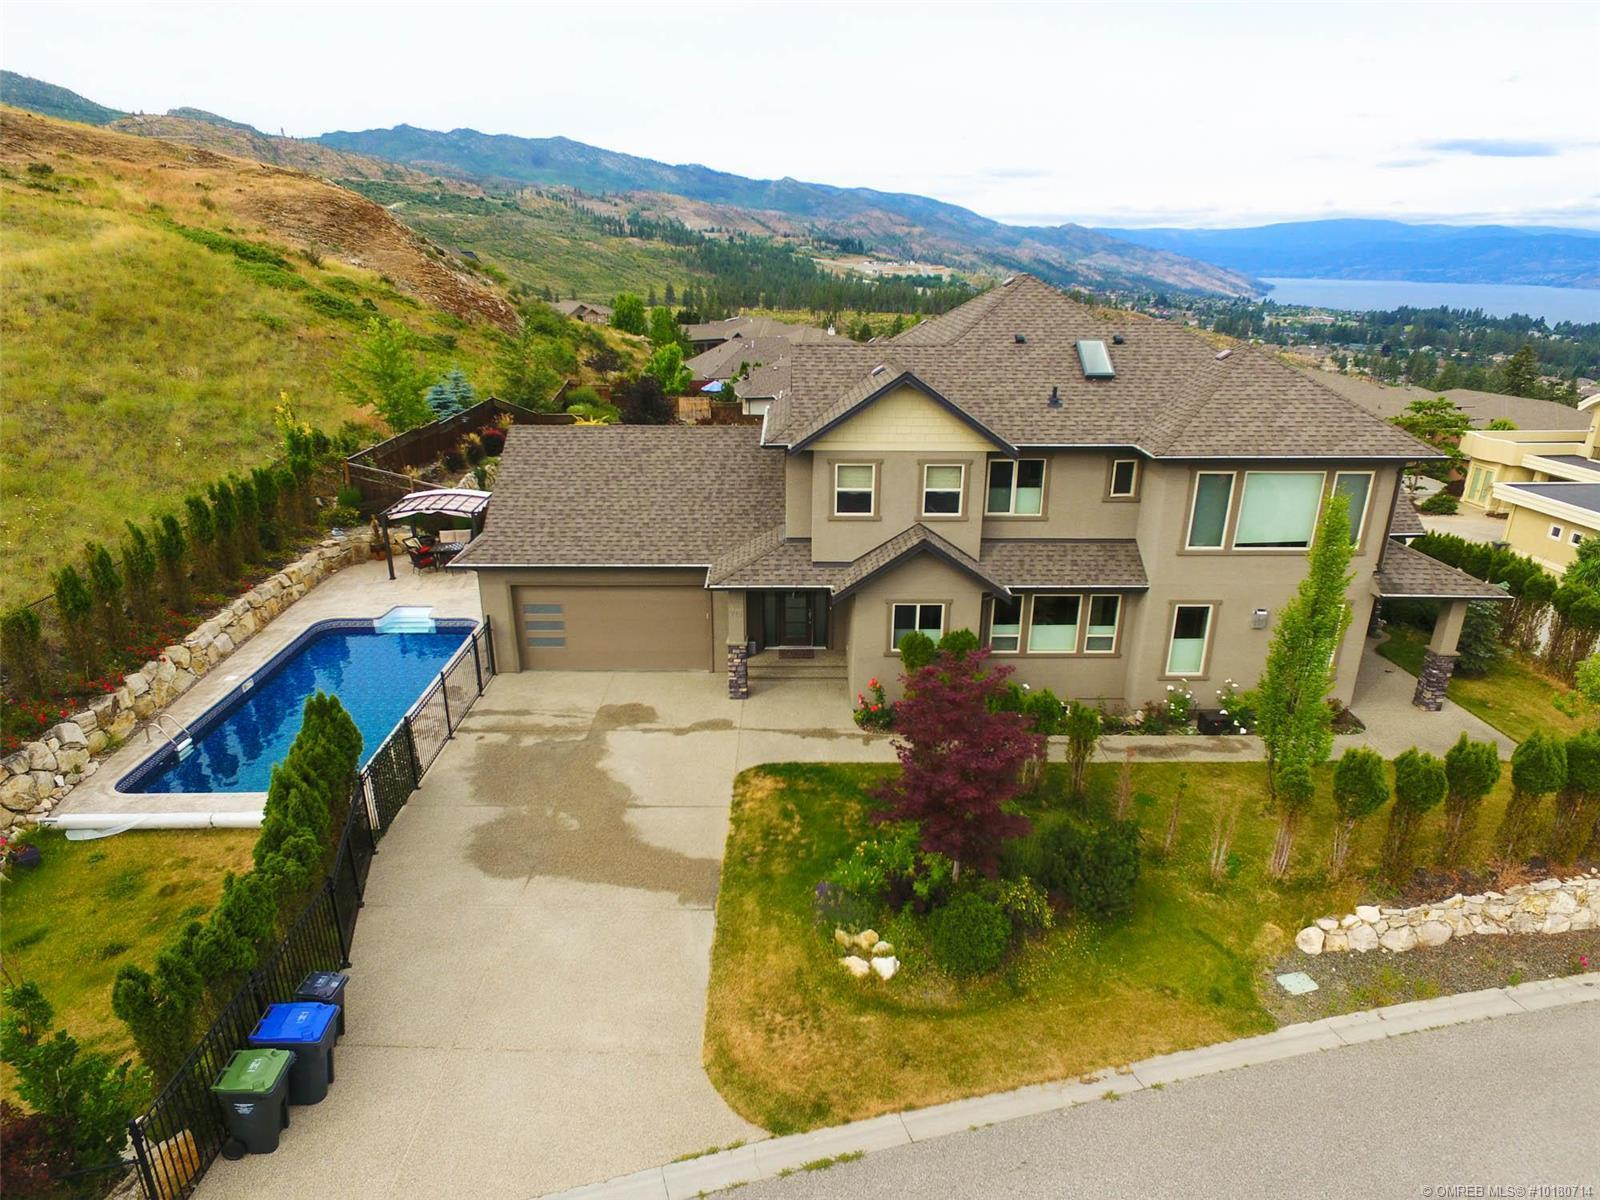 Removed: 715 Kuipers Crescent, Kelowna, BC - Removed on 2019-09-14 06:03:13